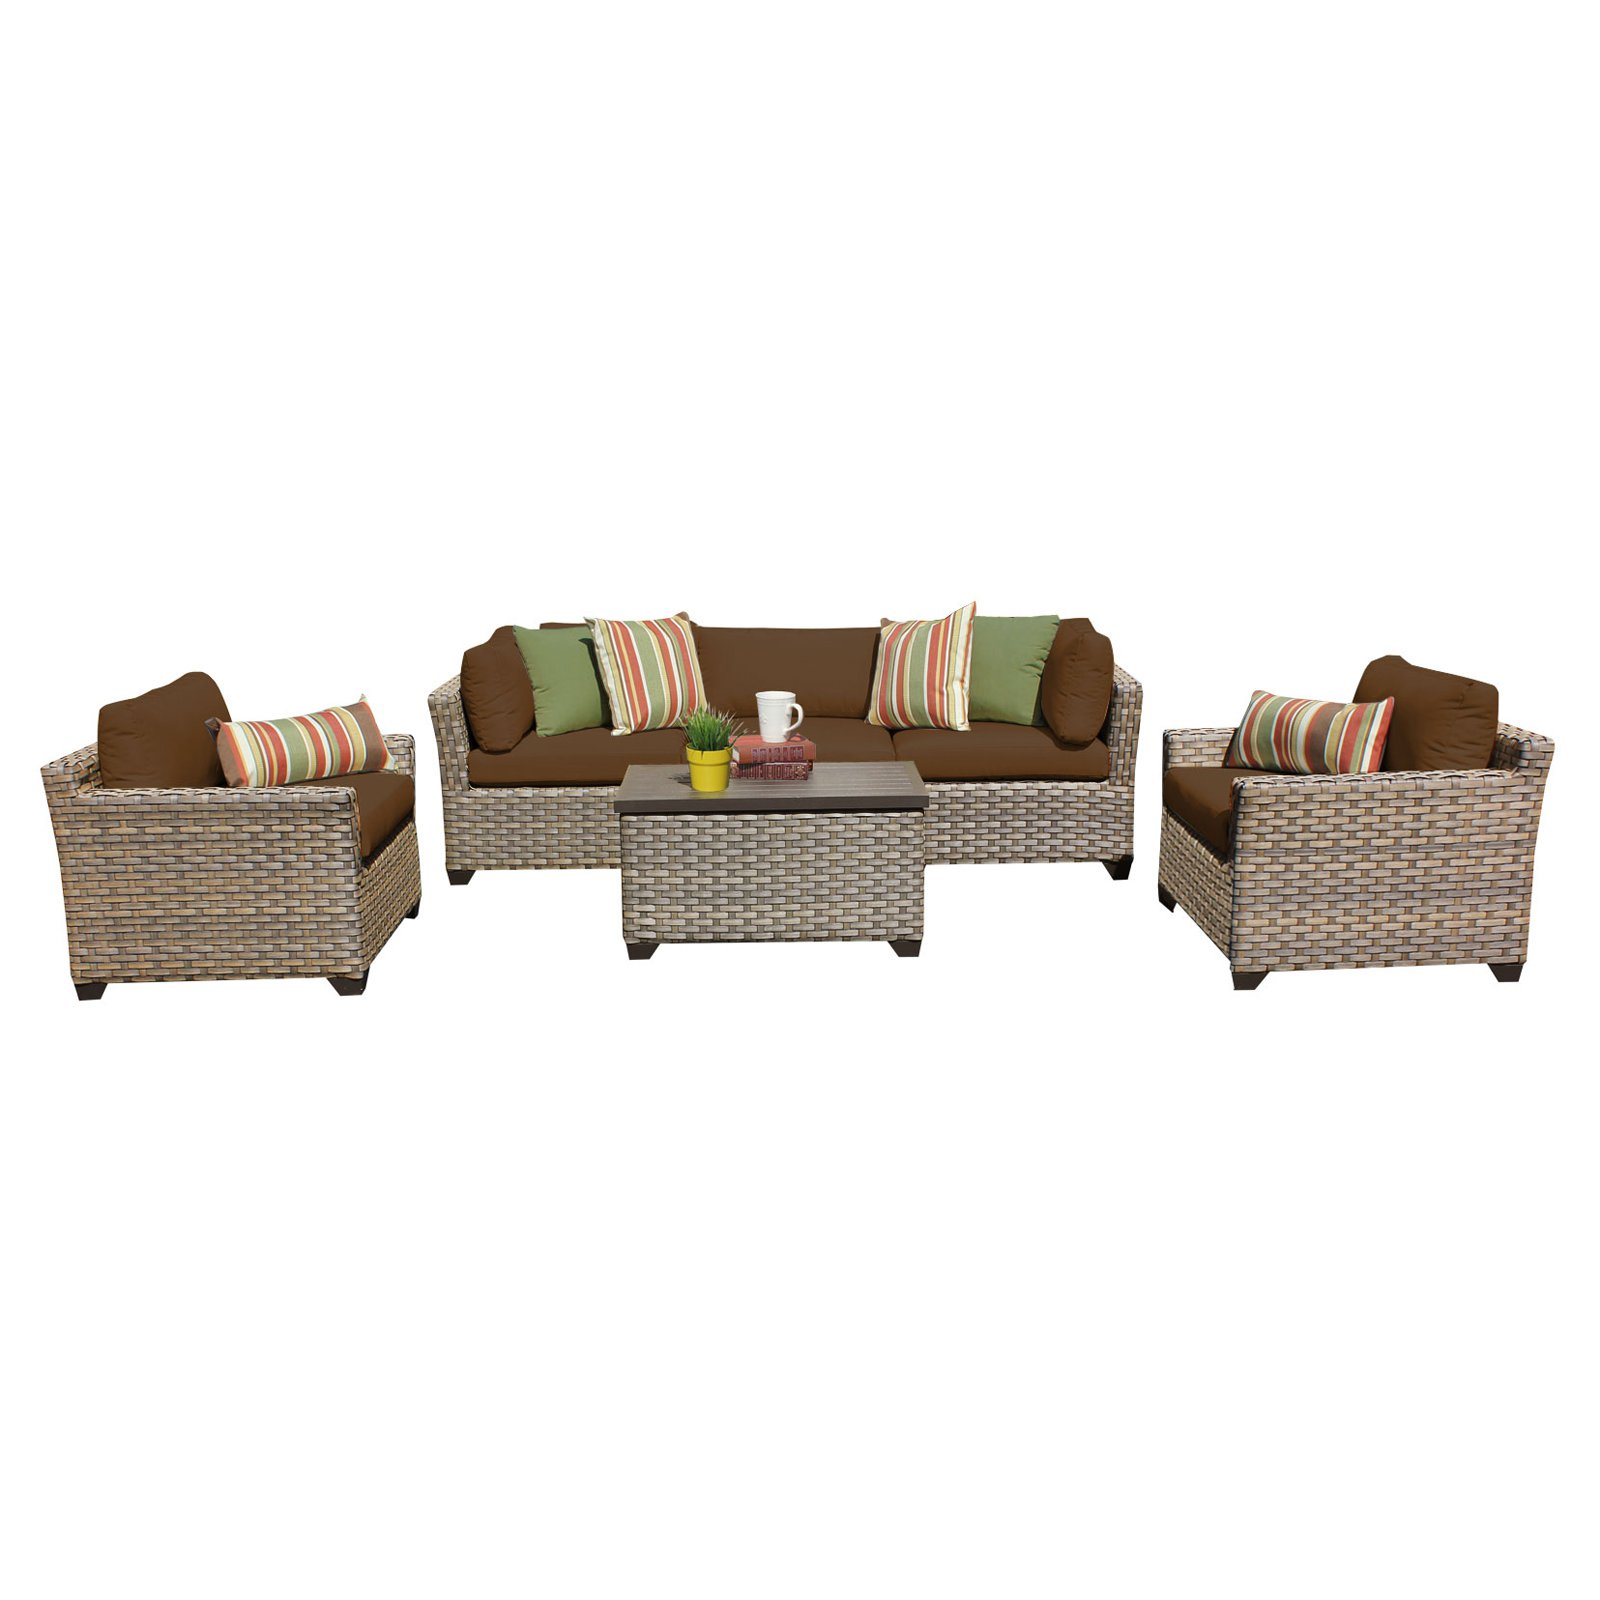 TK Classics Monterey Wicker 6 Piece Patio Conversation Set with Club Chair and 2 Sets of... by Delacora